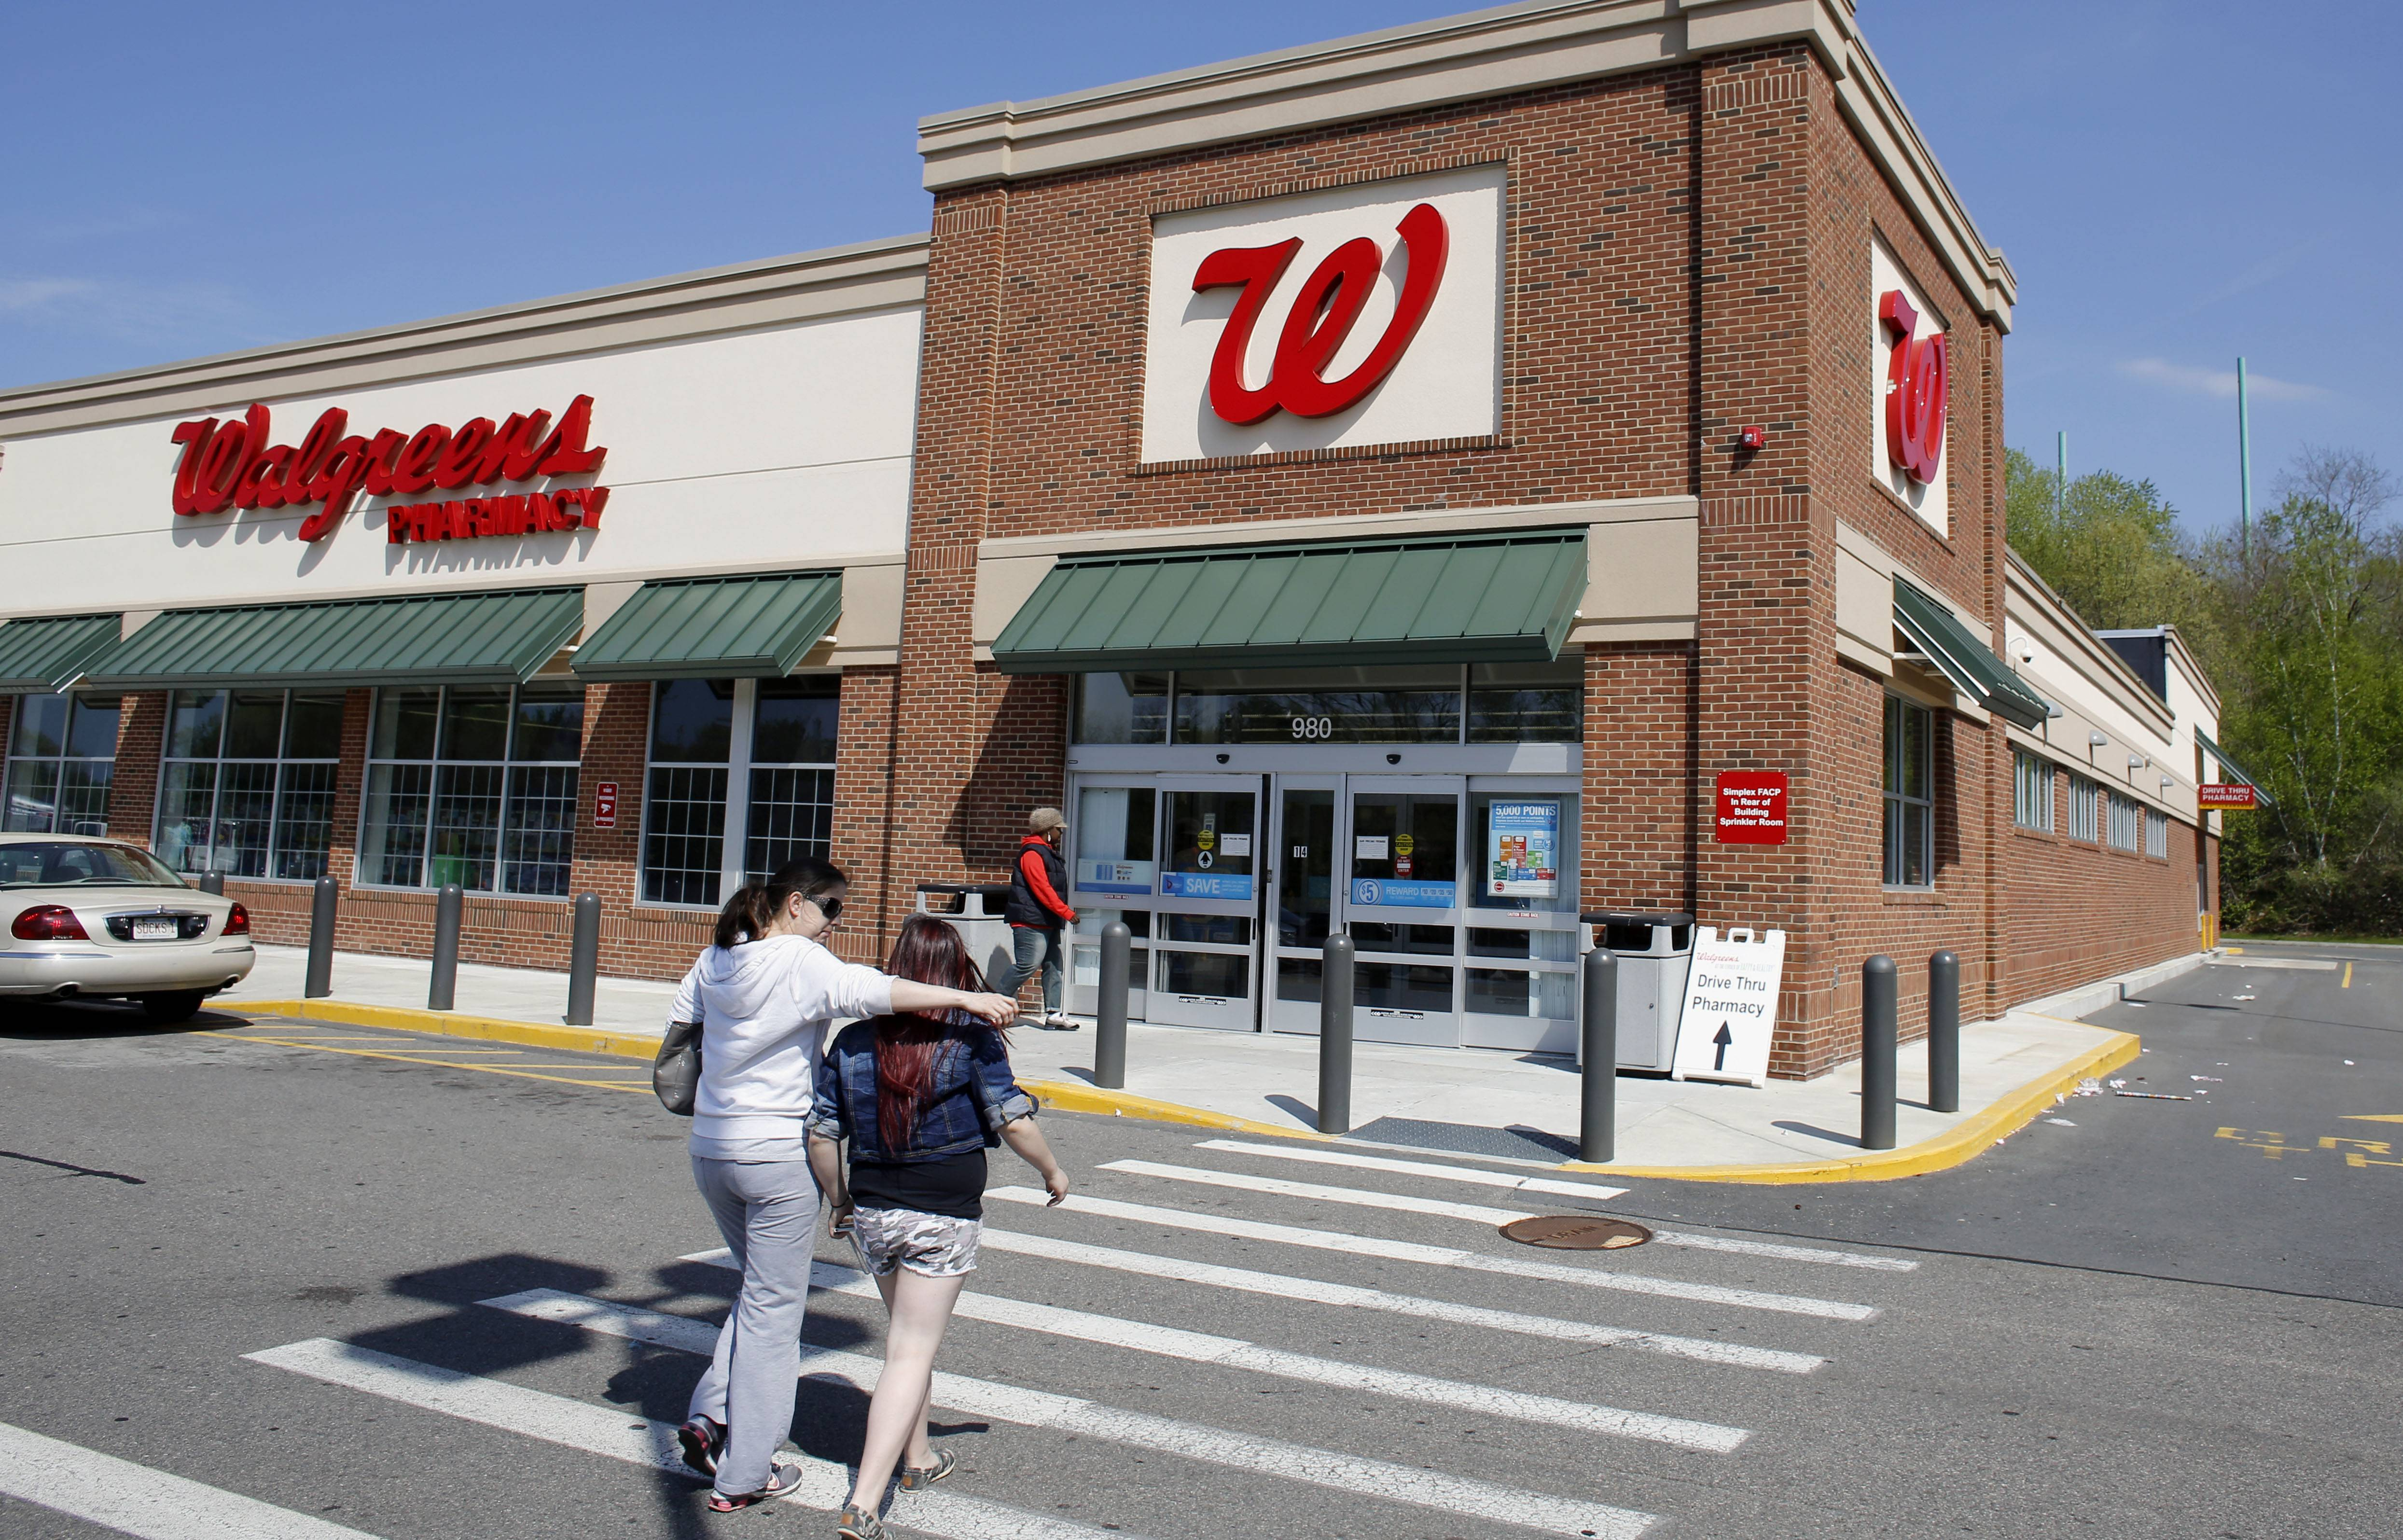 Walgreen's fiscal third quarter earnings jumped 16 percent compared with last year, aided in part by a lower income tax rate, but the nation's largest drugstore chain missed Wall Street's expectations.